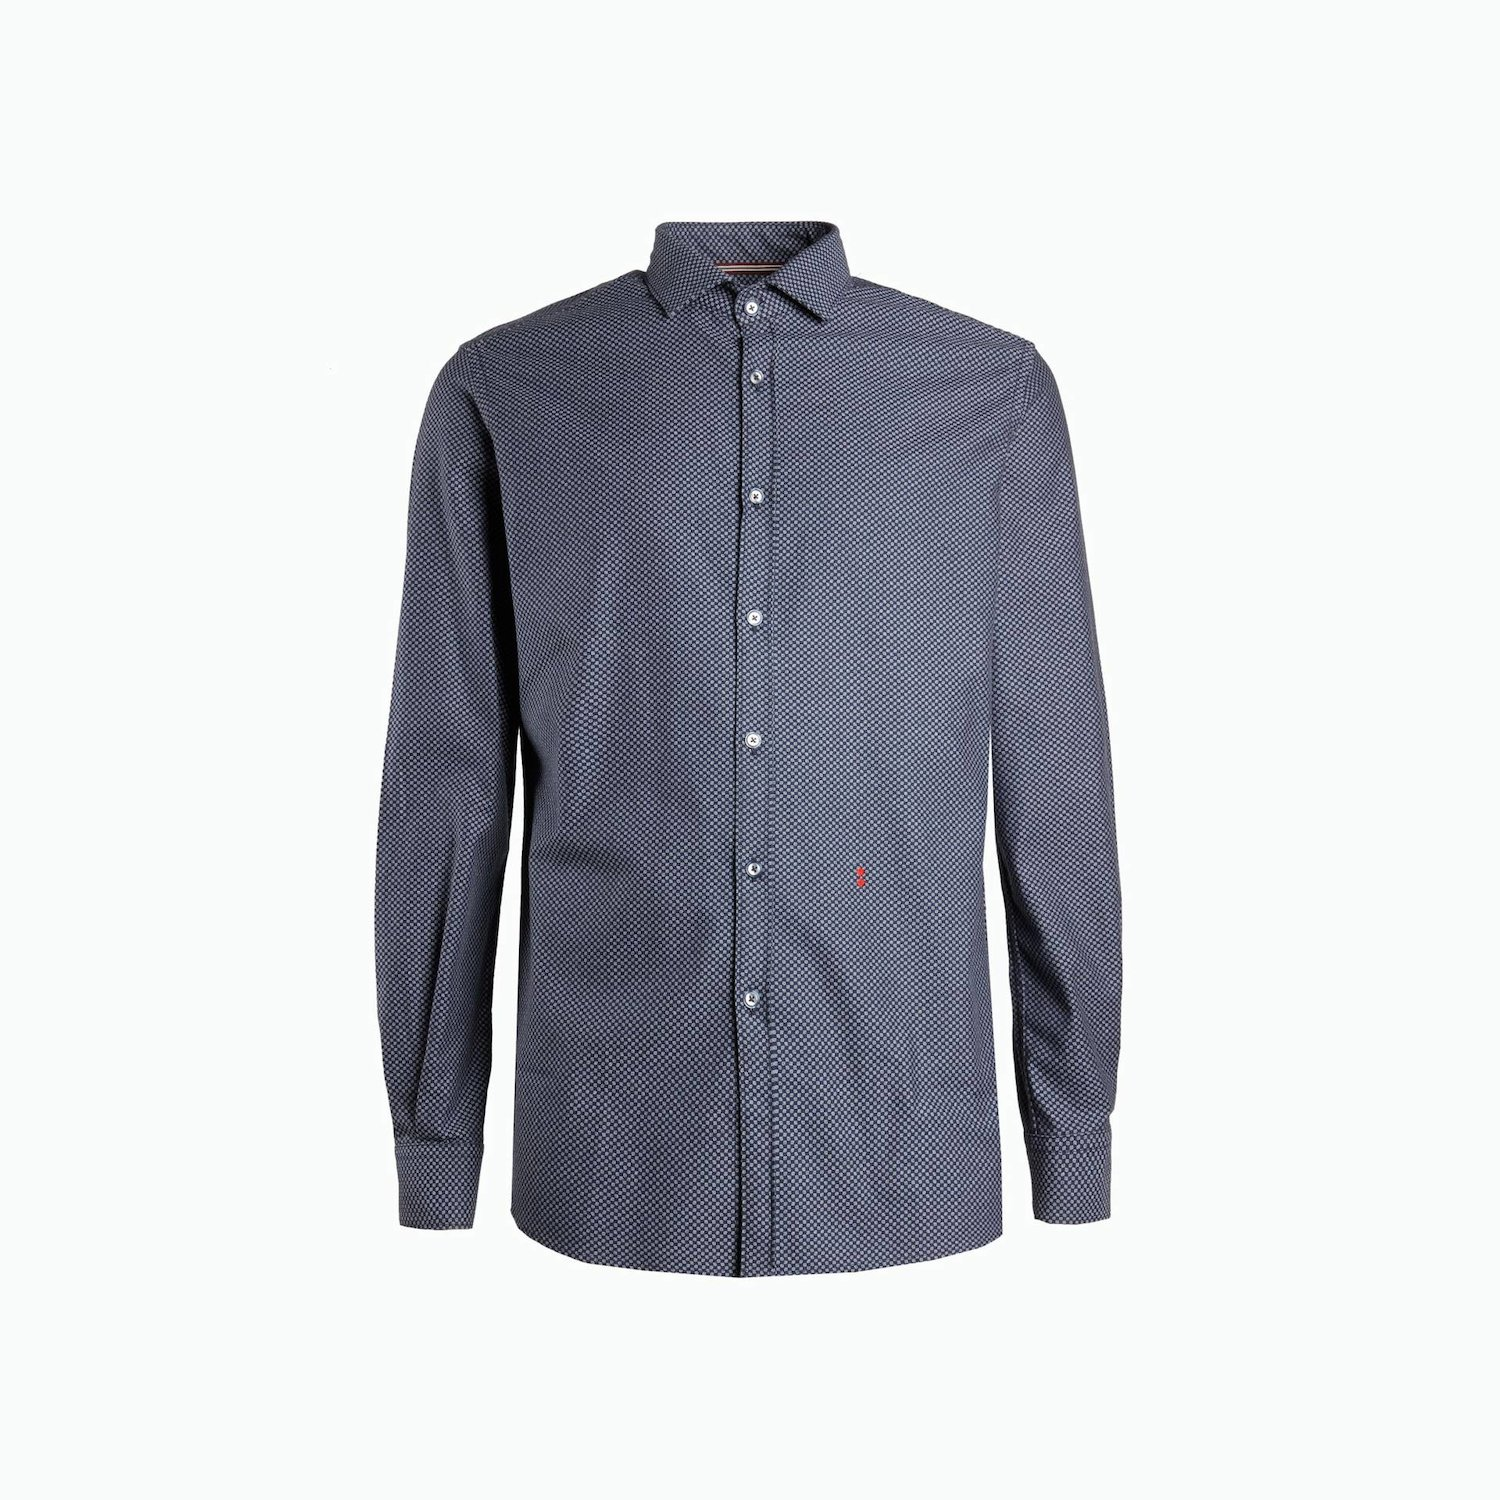 B161 shirt - Navy Pattern